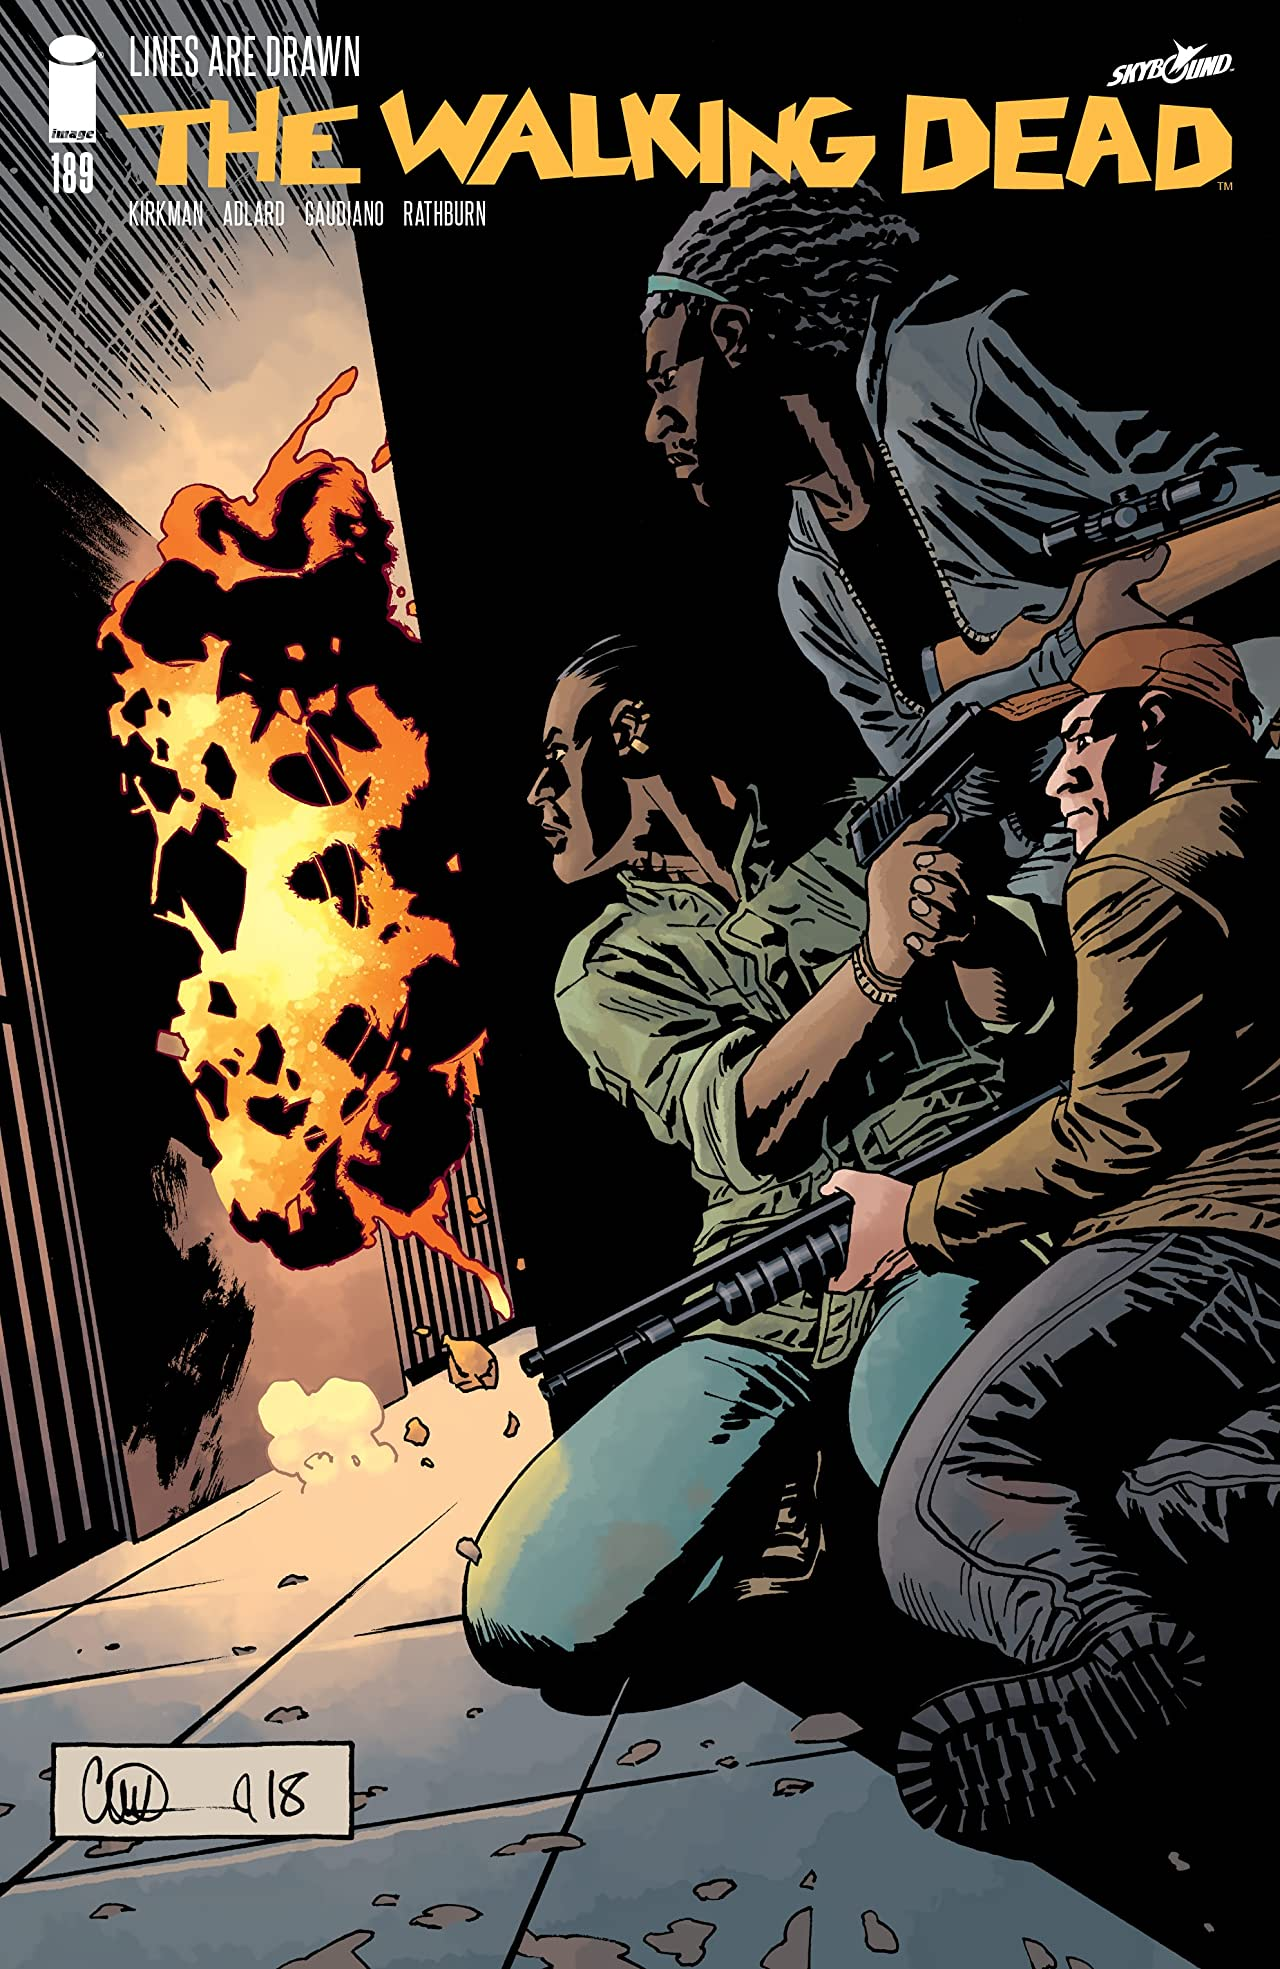 The Walking Dead #189